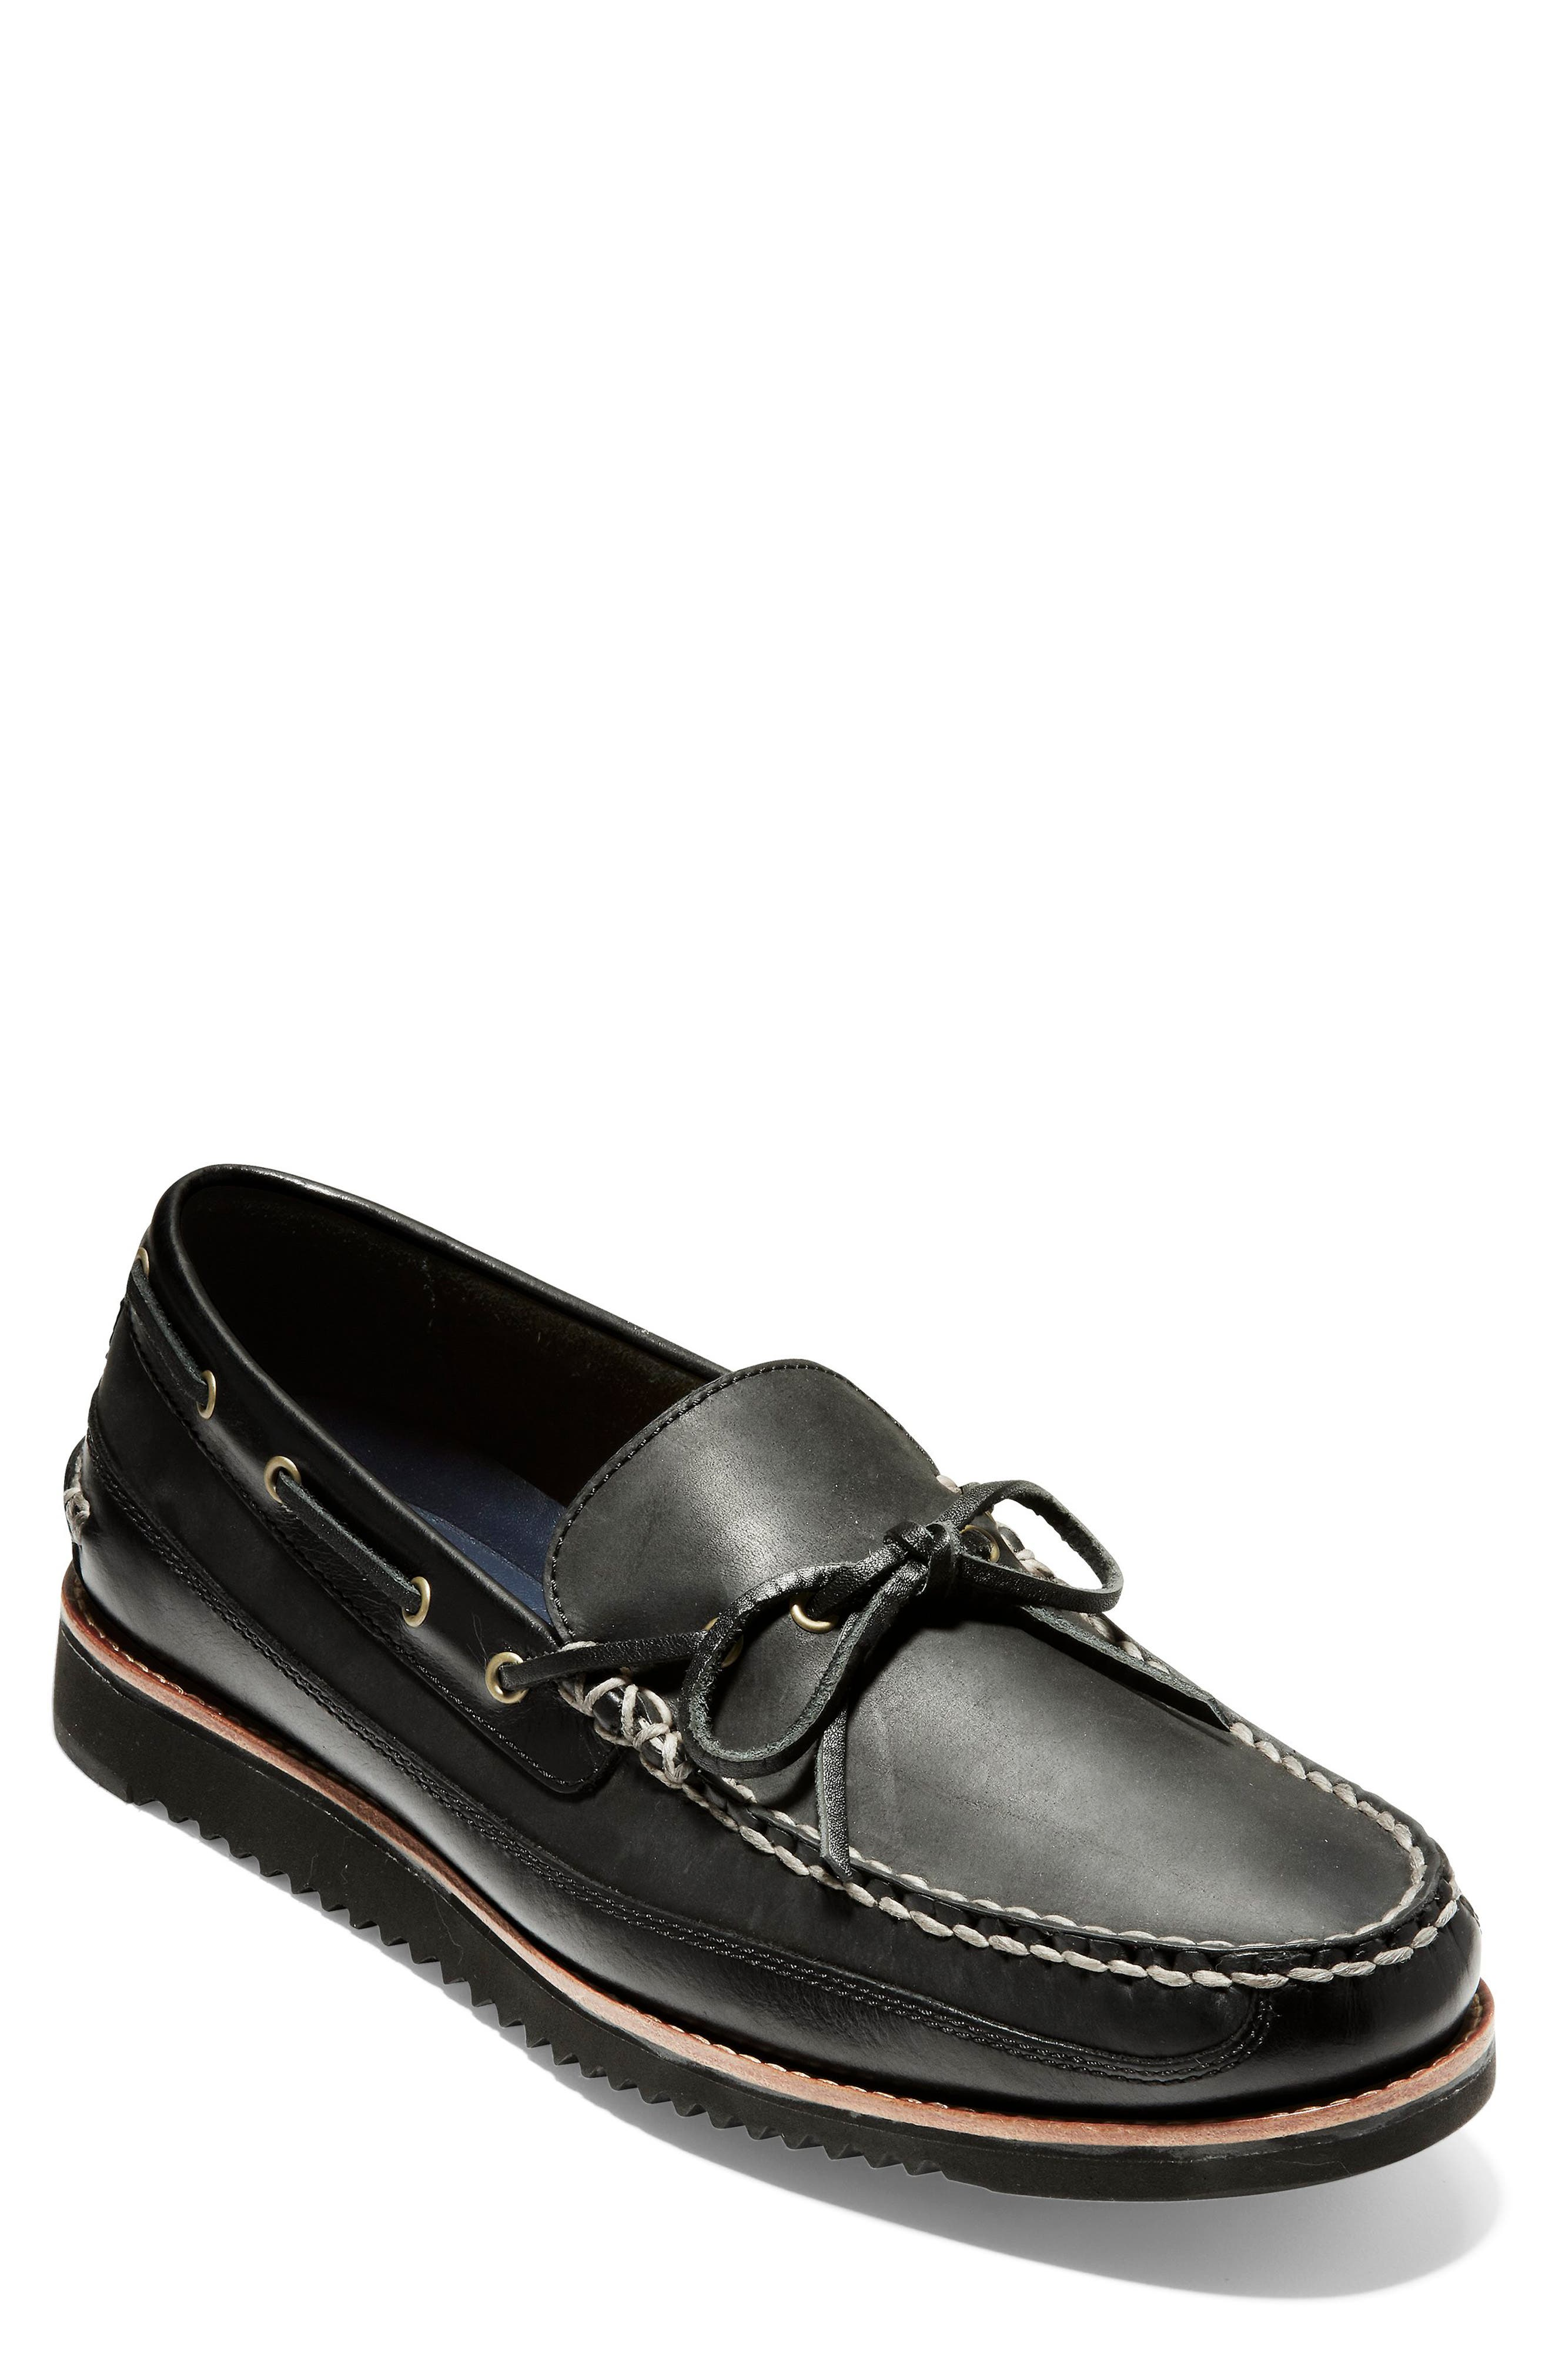 Pinch Loafer,                             Main thumbnail 1, color,                             001